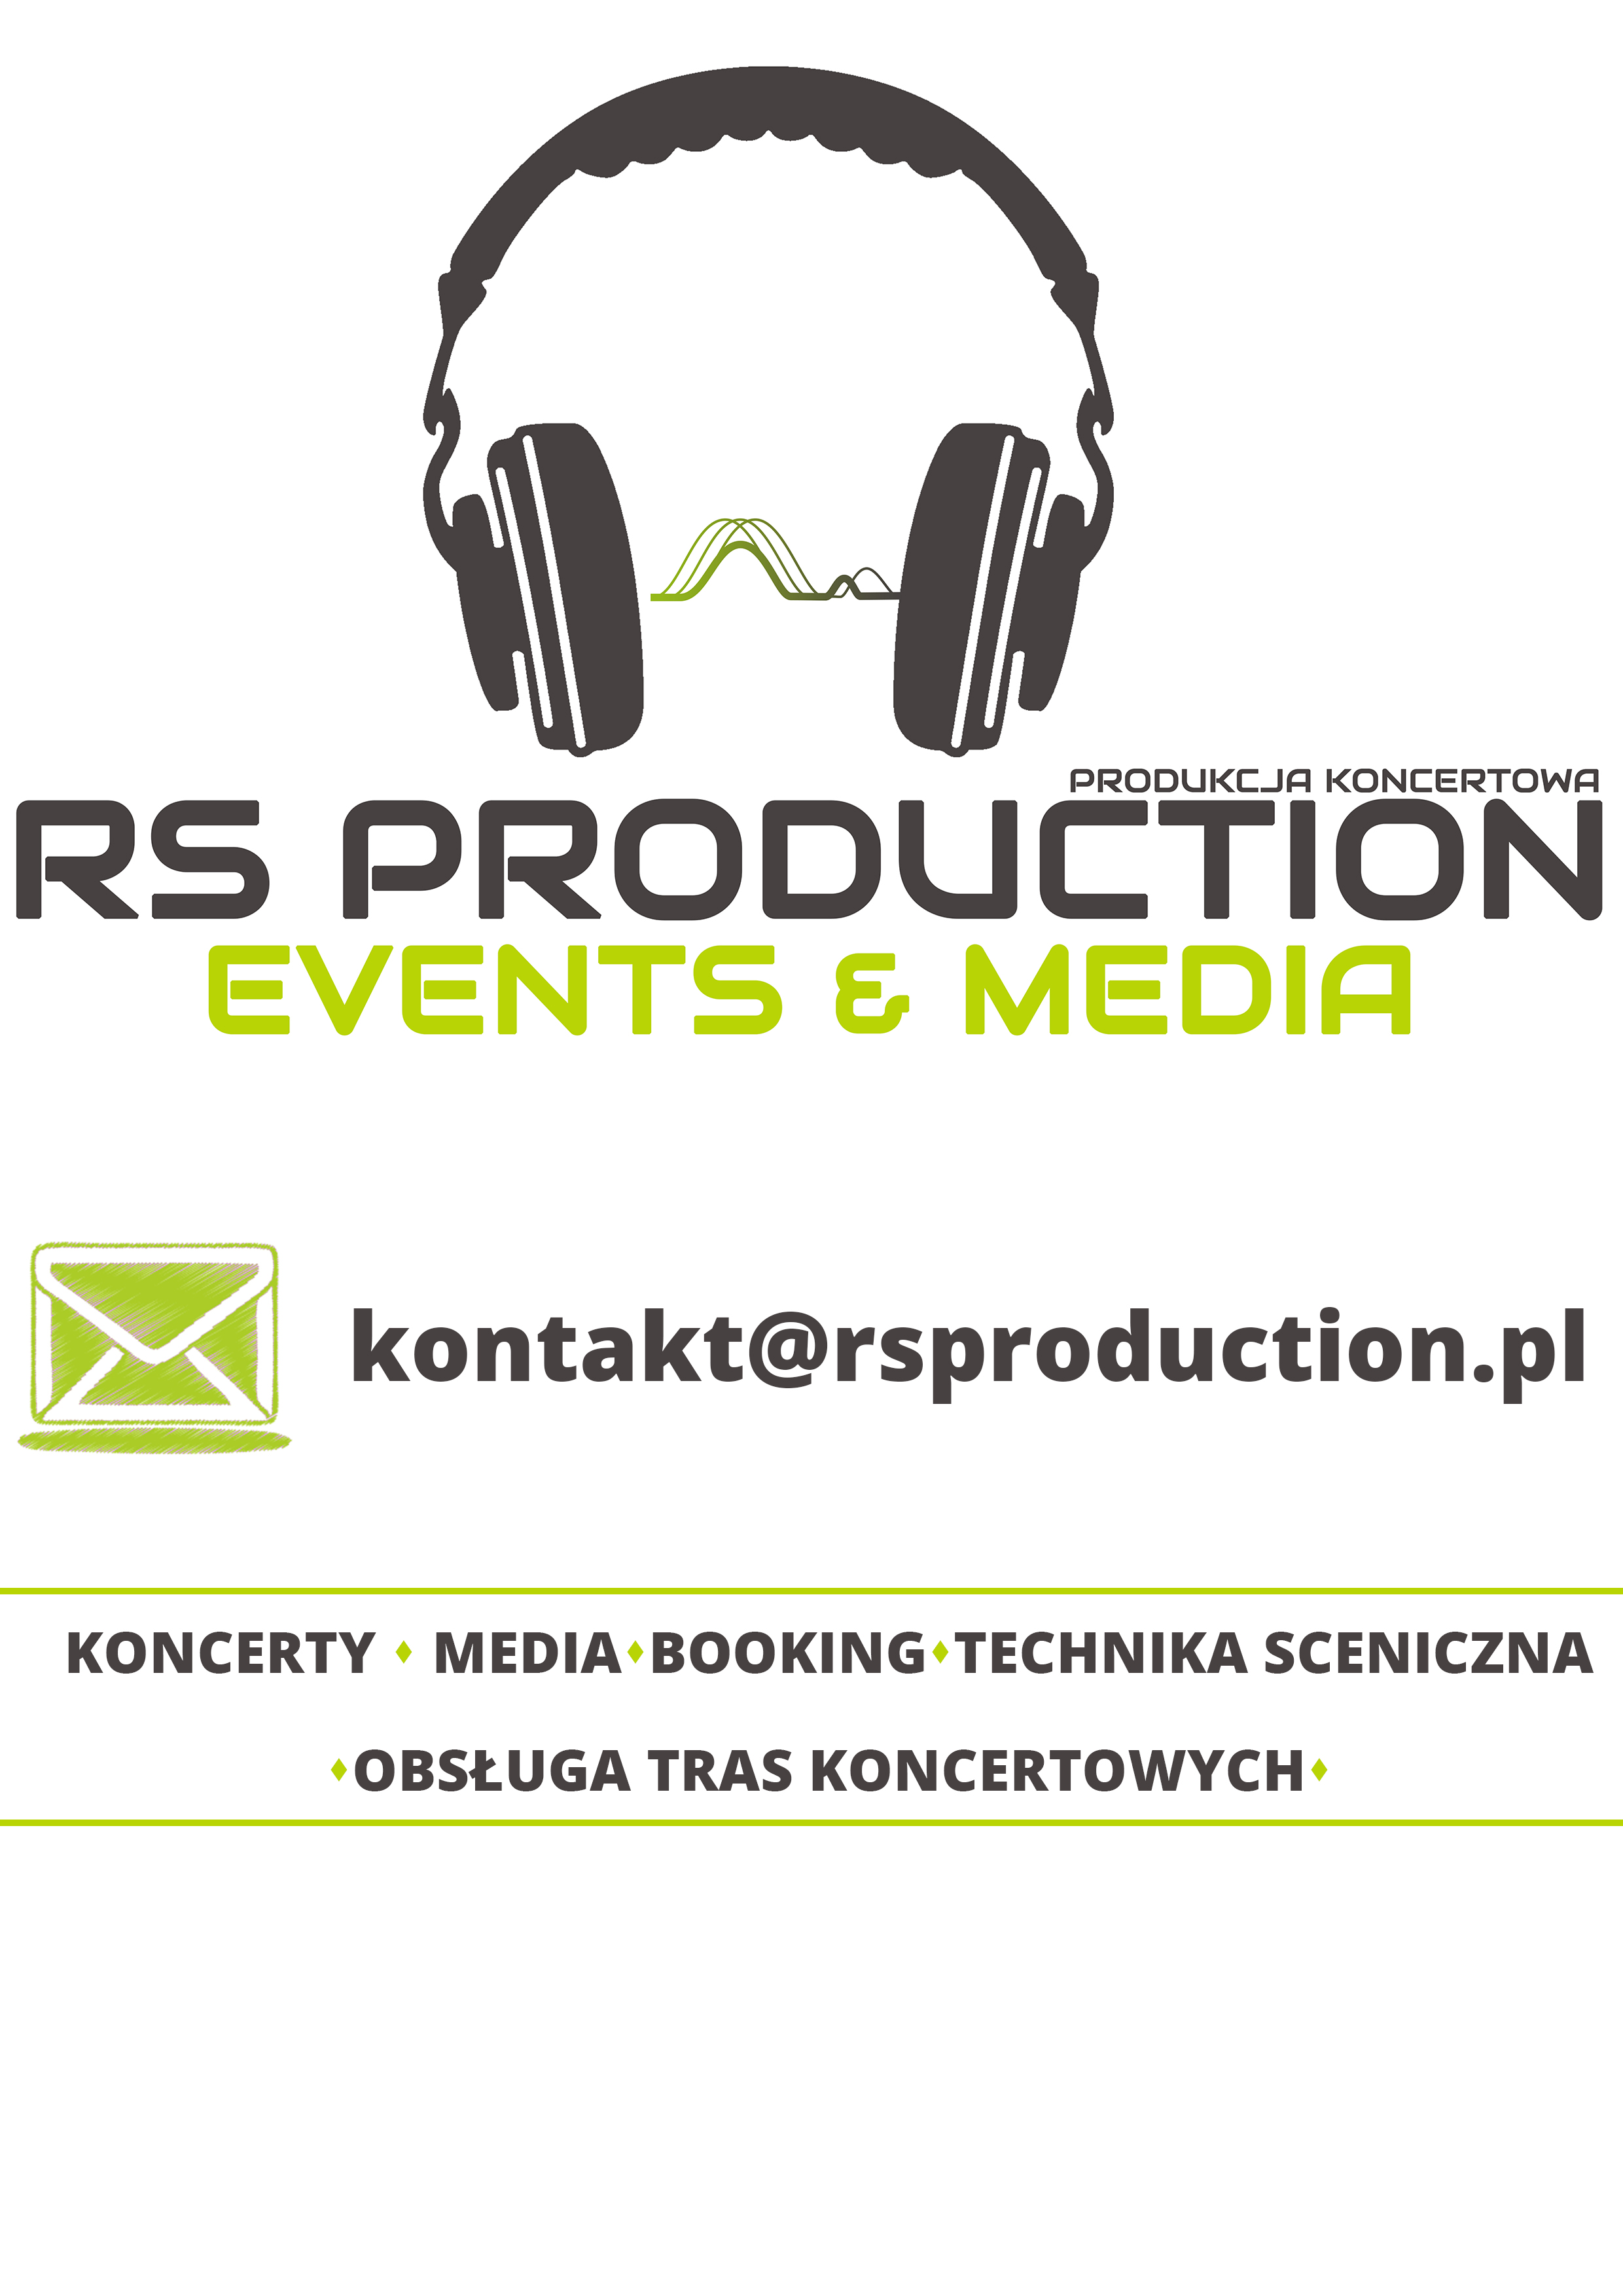 RSPRODUCTION.PL